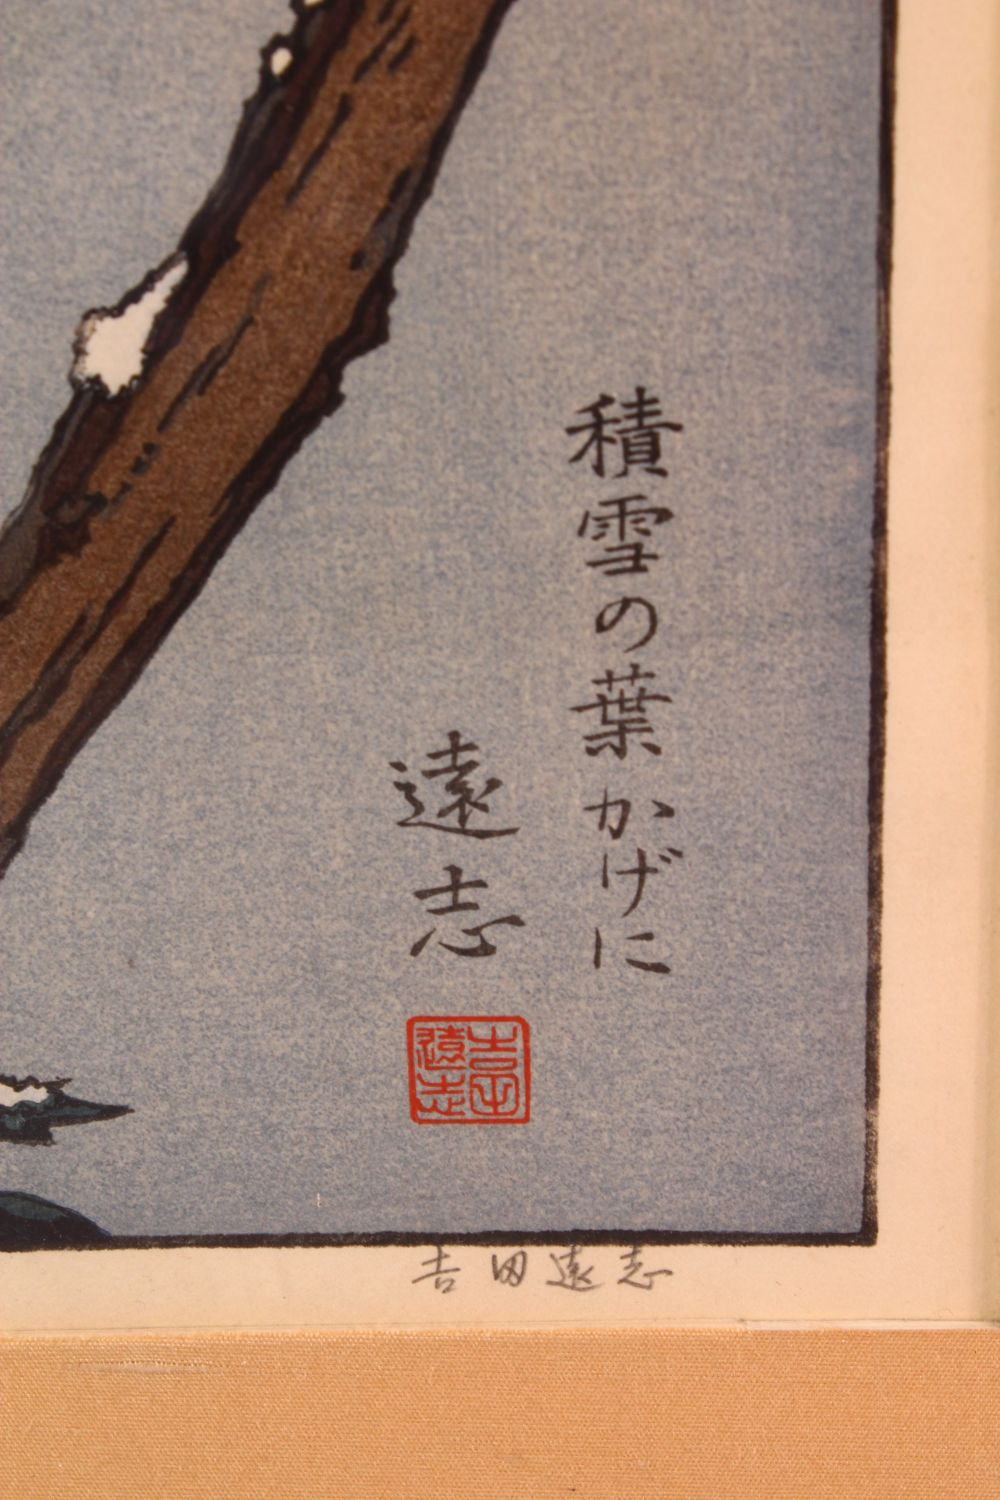 A LARGER JAPANESE WOODBLOCK PRINT BY TOSHI YOSHIDA 1911 - 1995, sitting under snow covered - Image 4 of 4